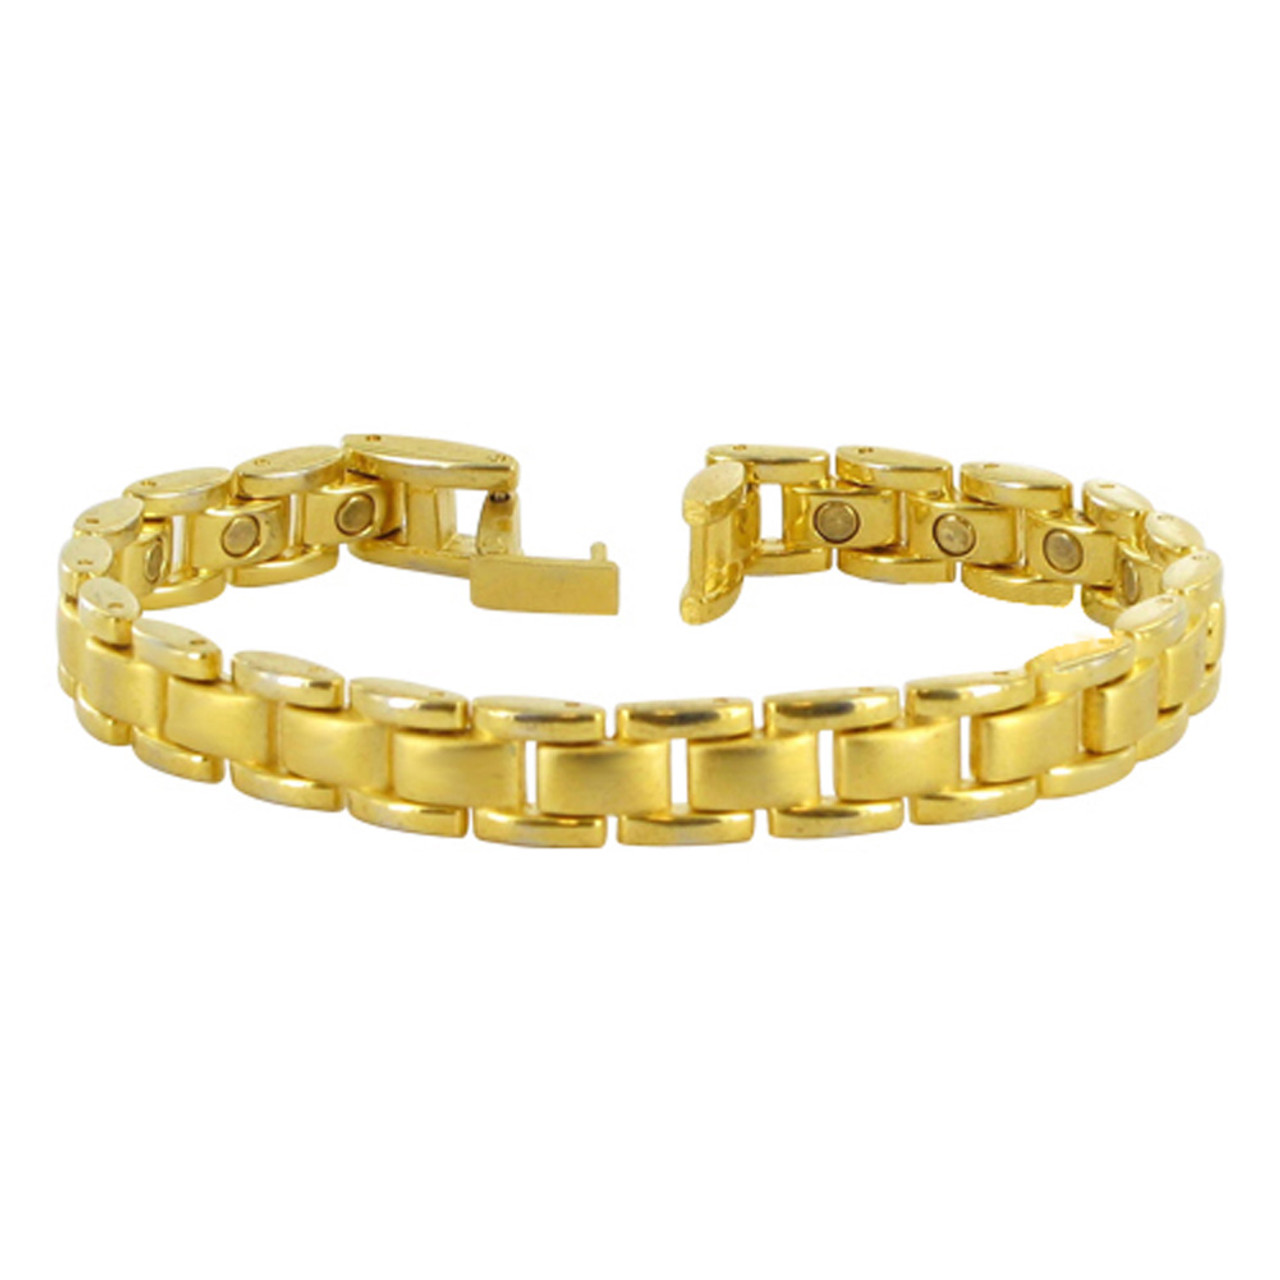 Gold Tone Magnetic Therapy Link 8.5 inch Bracelet with Fold over Clasps